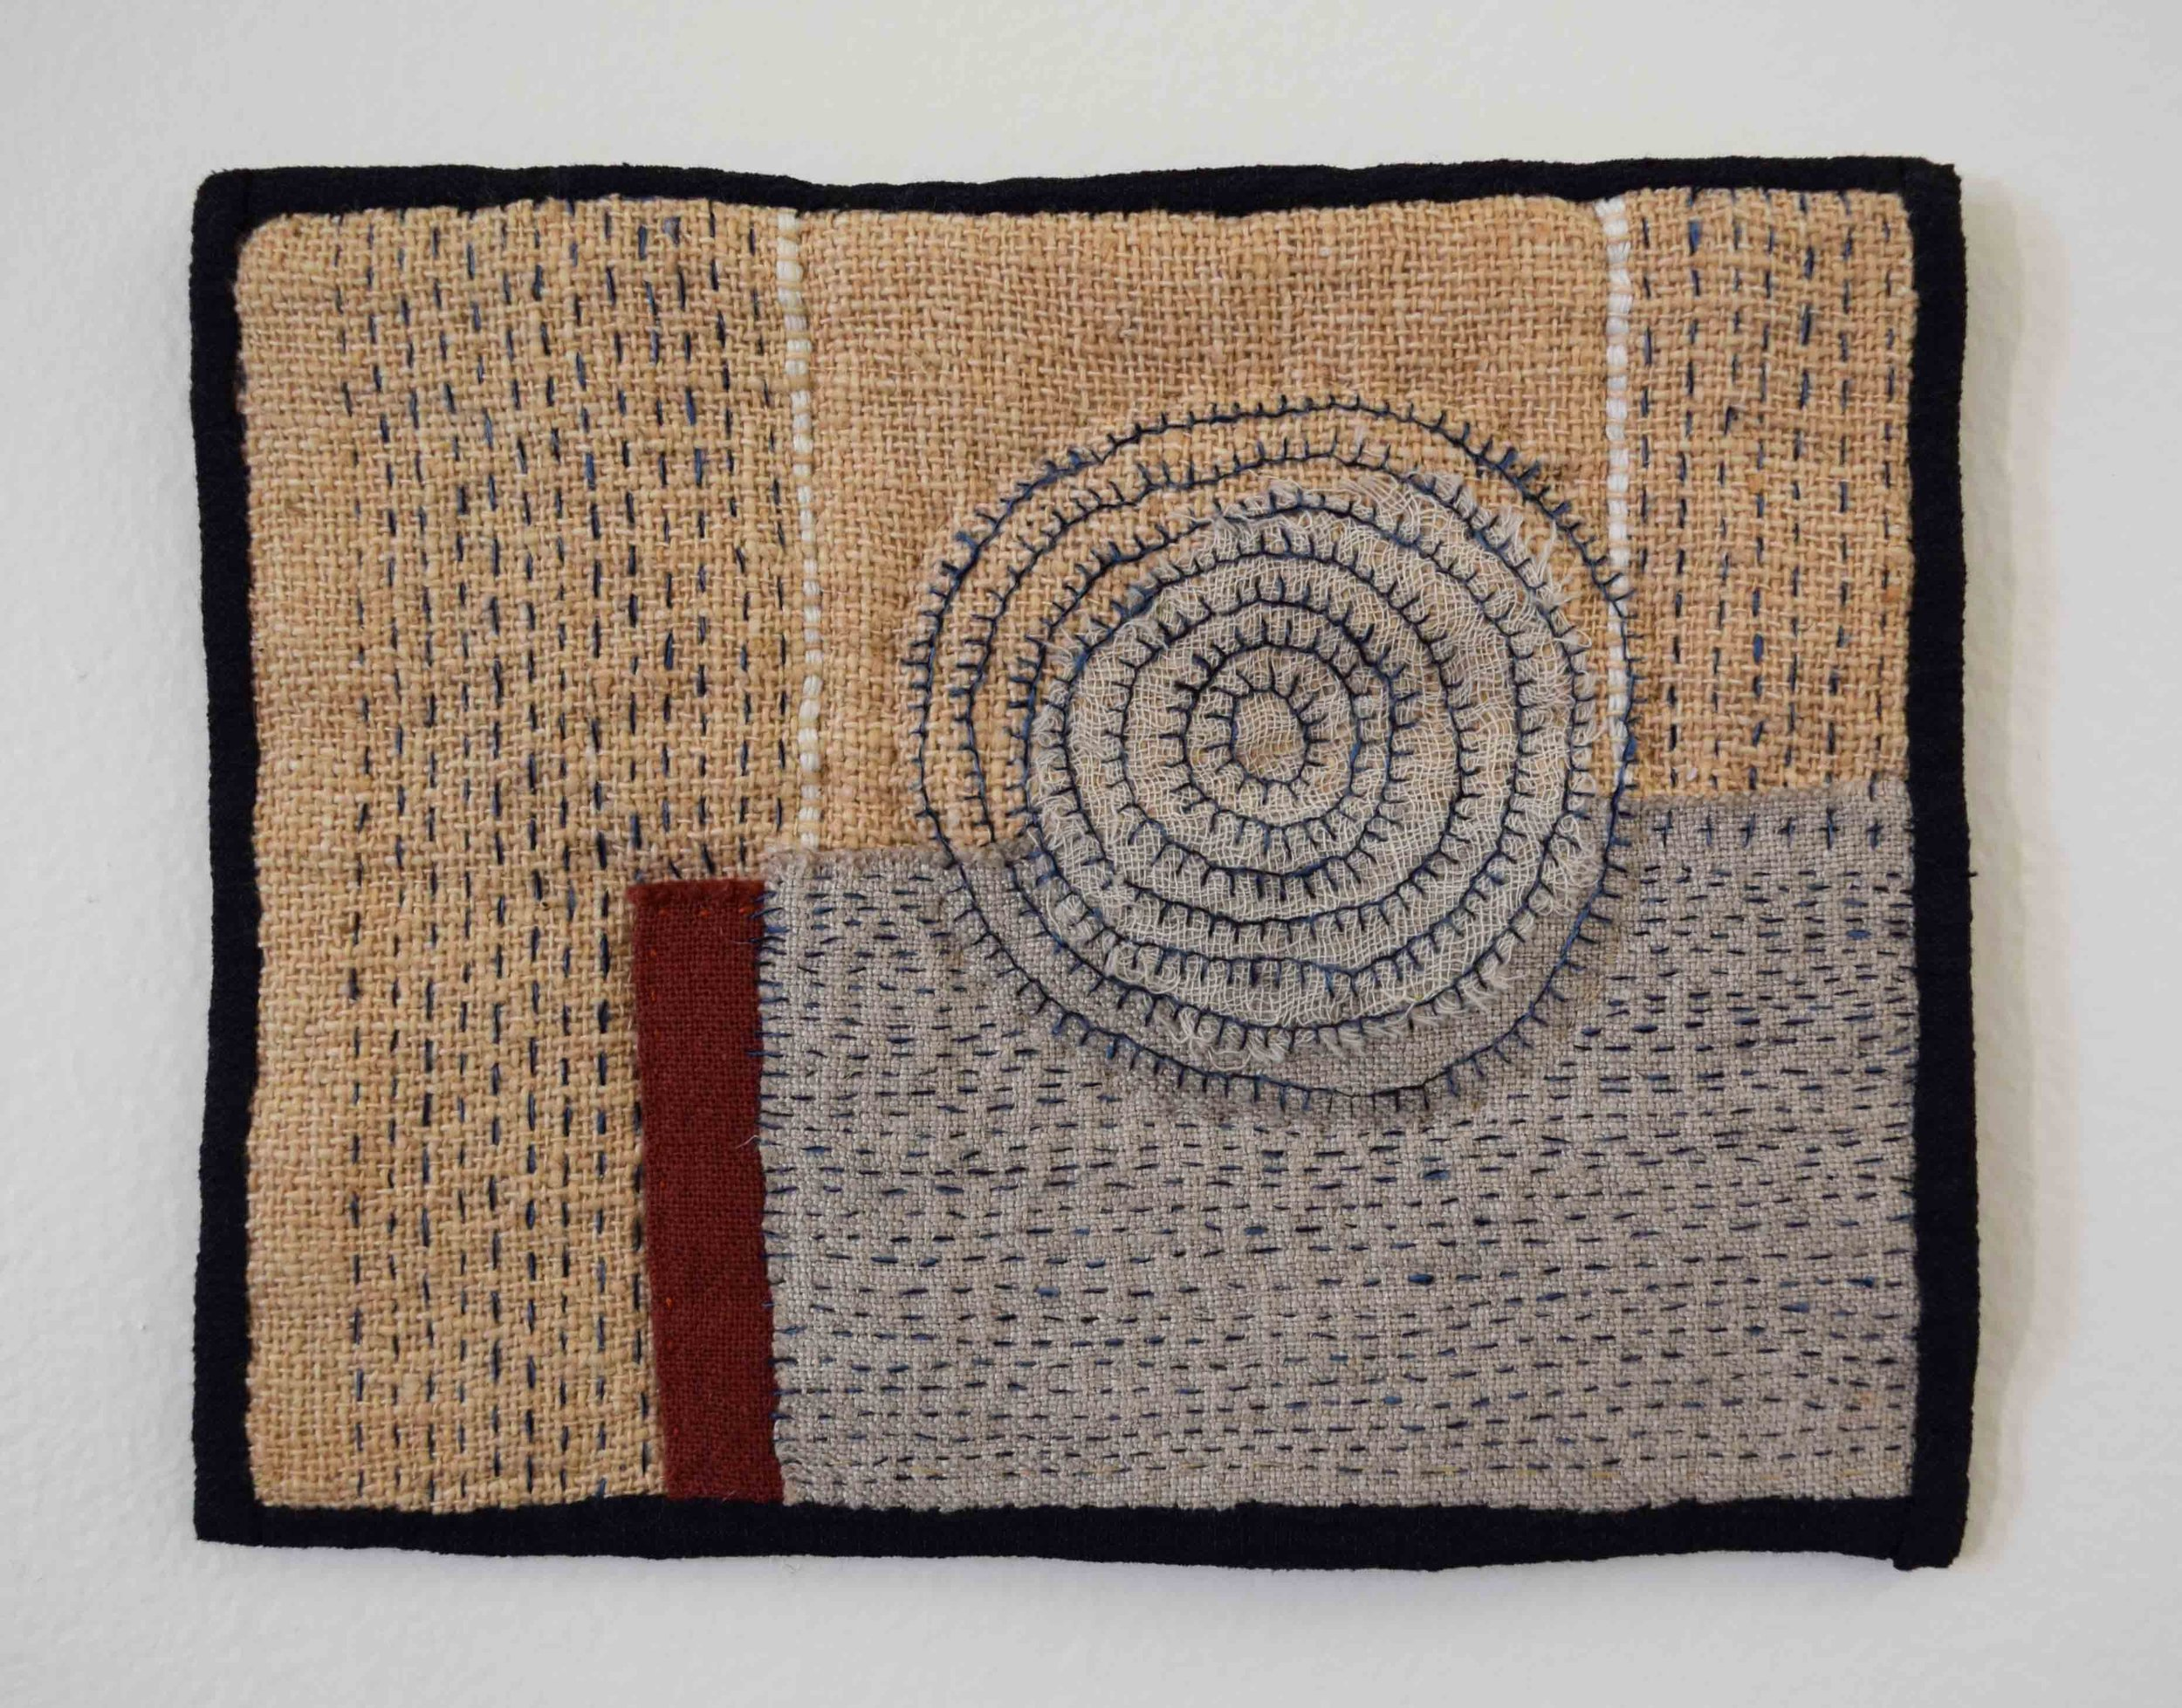 31. Anne Williams,  Untitled,  2018, hand stitched cotton, linen and silk, 15 x 19 cm $125